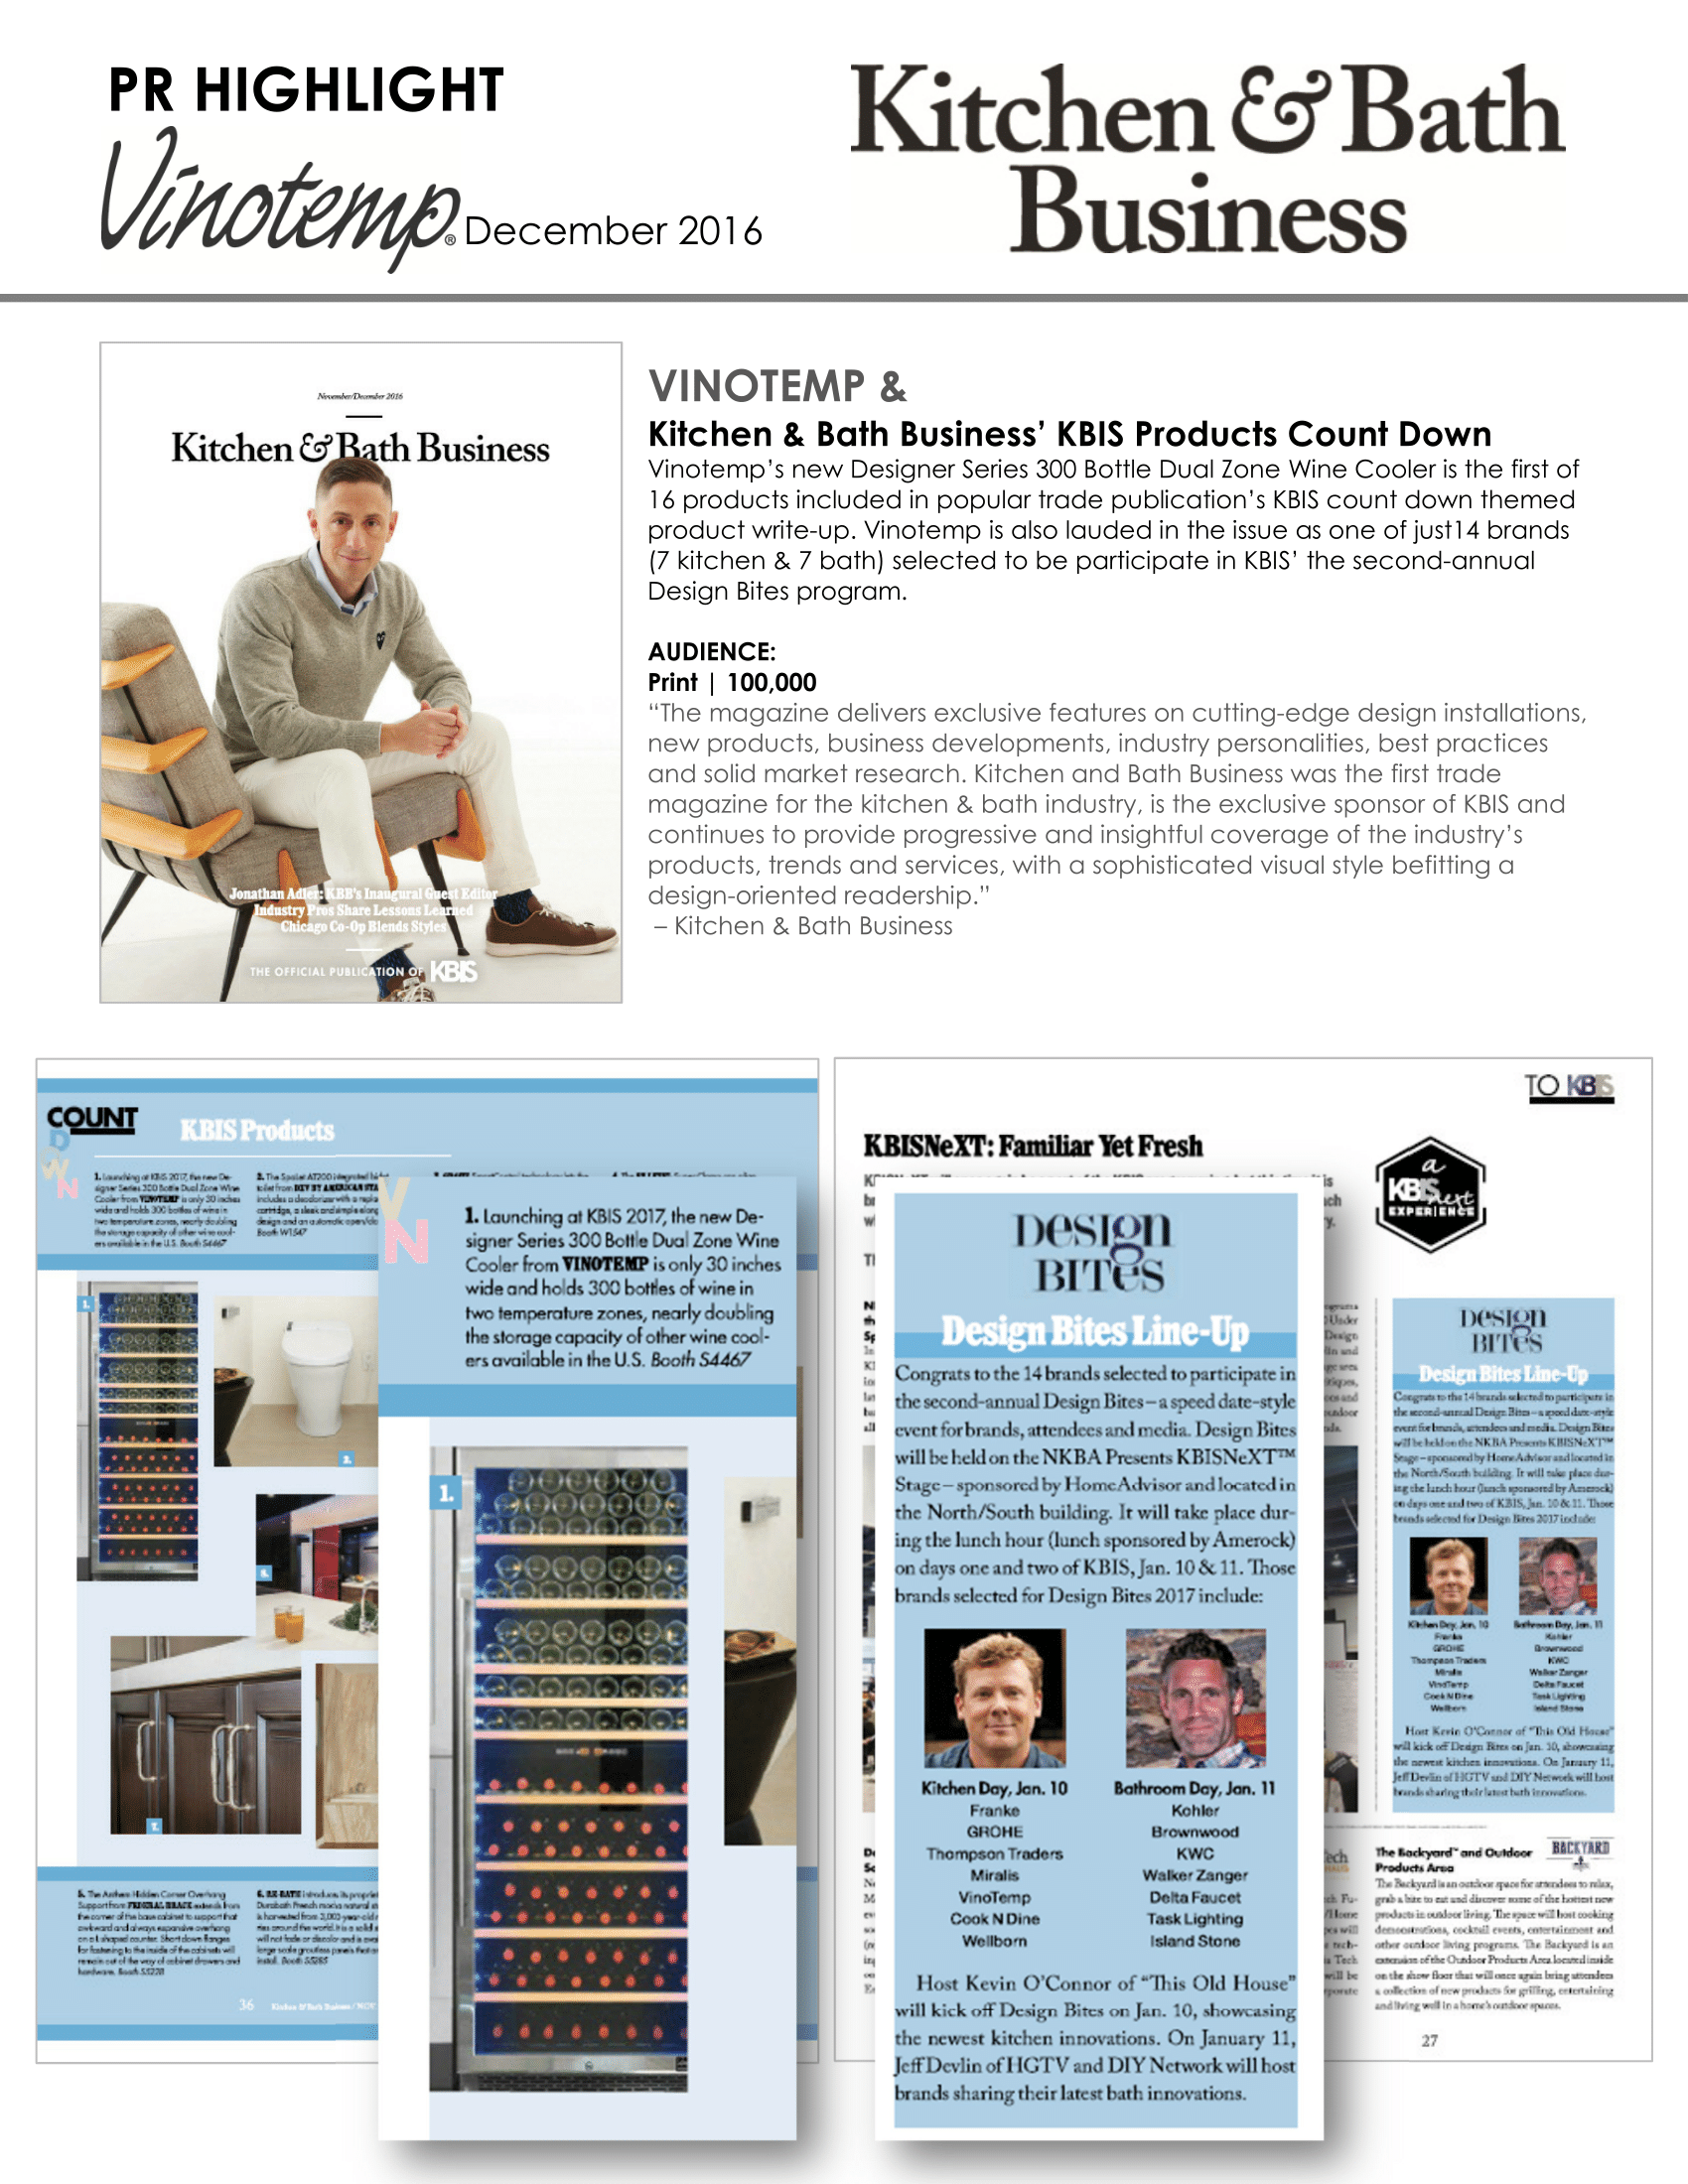 Vinotemp featured in Kitchen & Bath Business